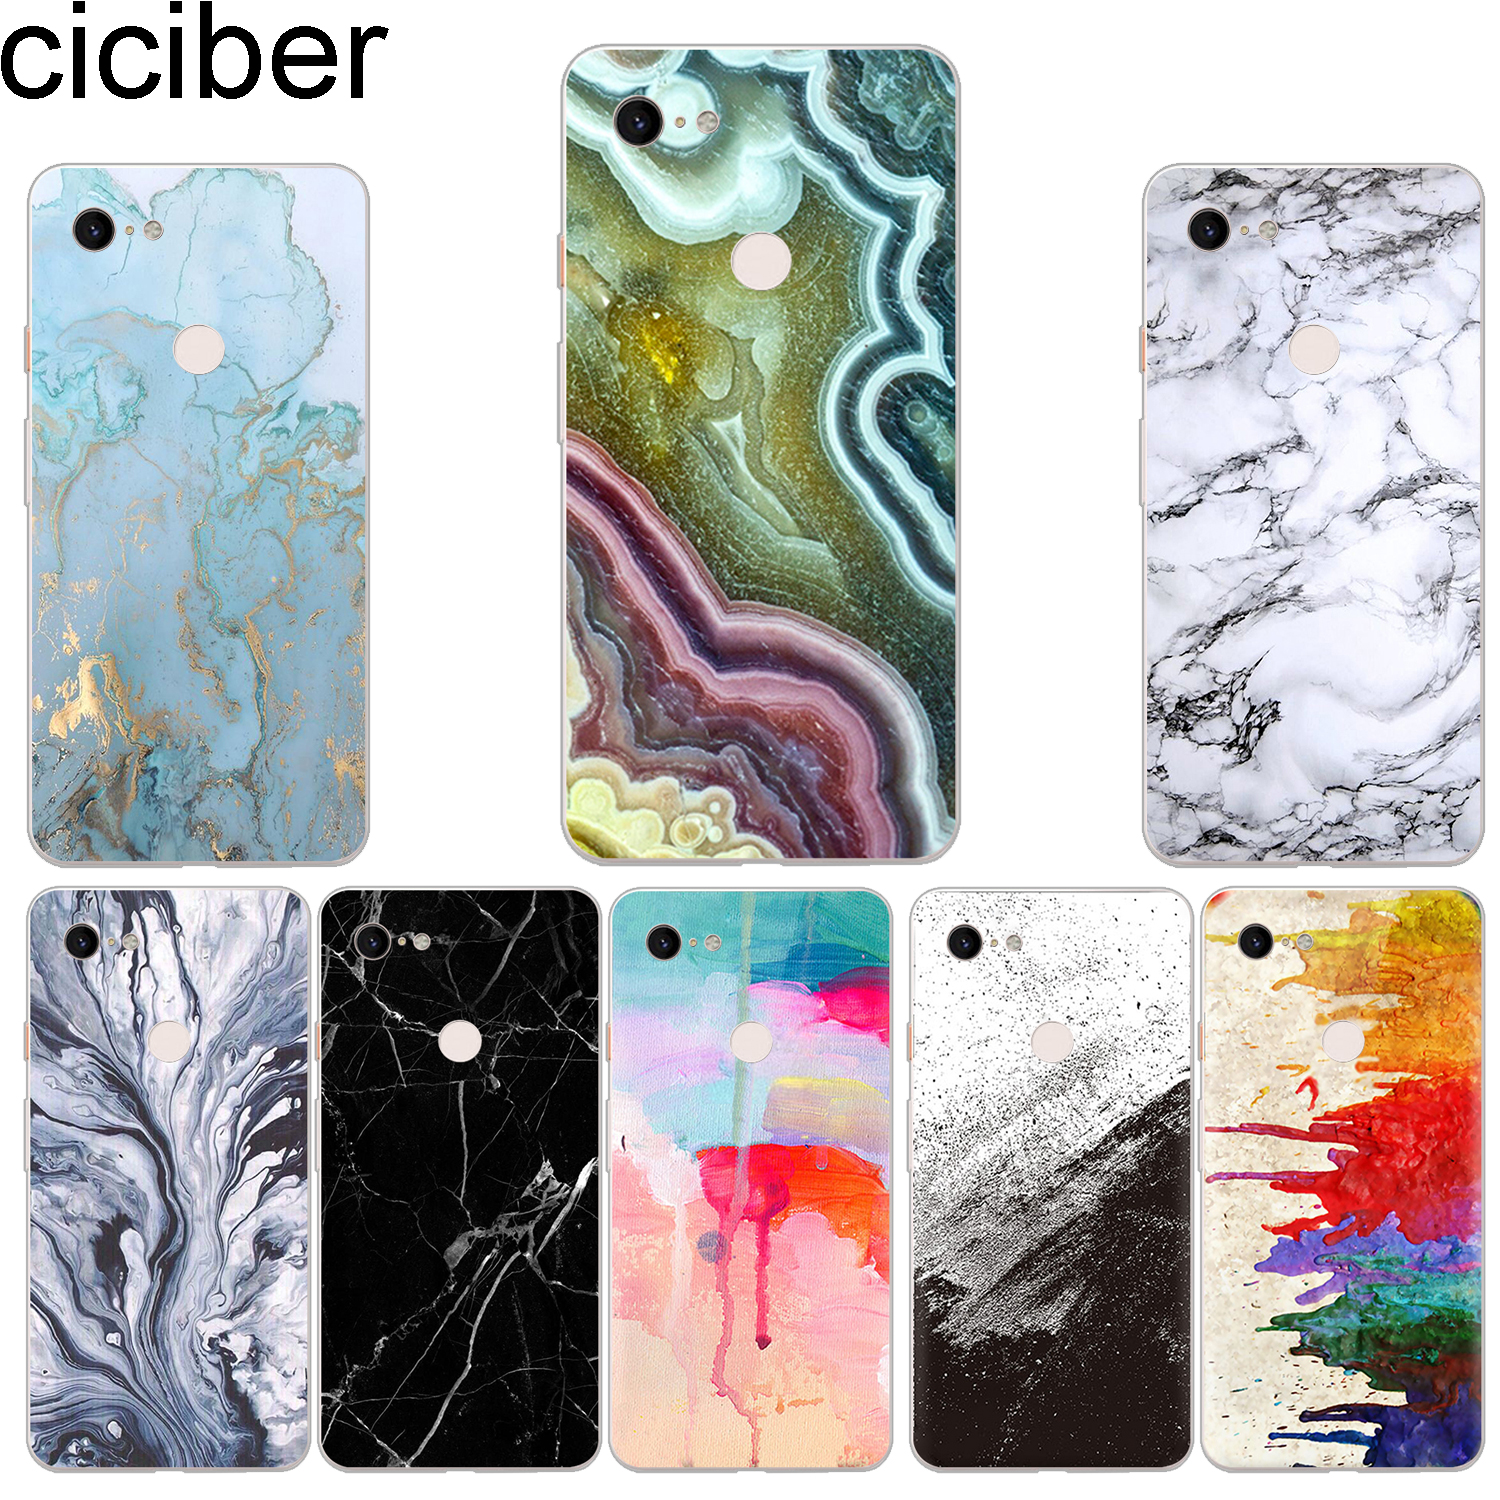 Ciciber New Fashion Phone Cases For Google Pixel 3 2 XL Case Soft TPU Back Cover For Pixel 3XL 2XL Marble Funda Capa Coque